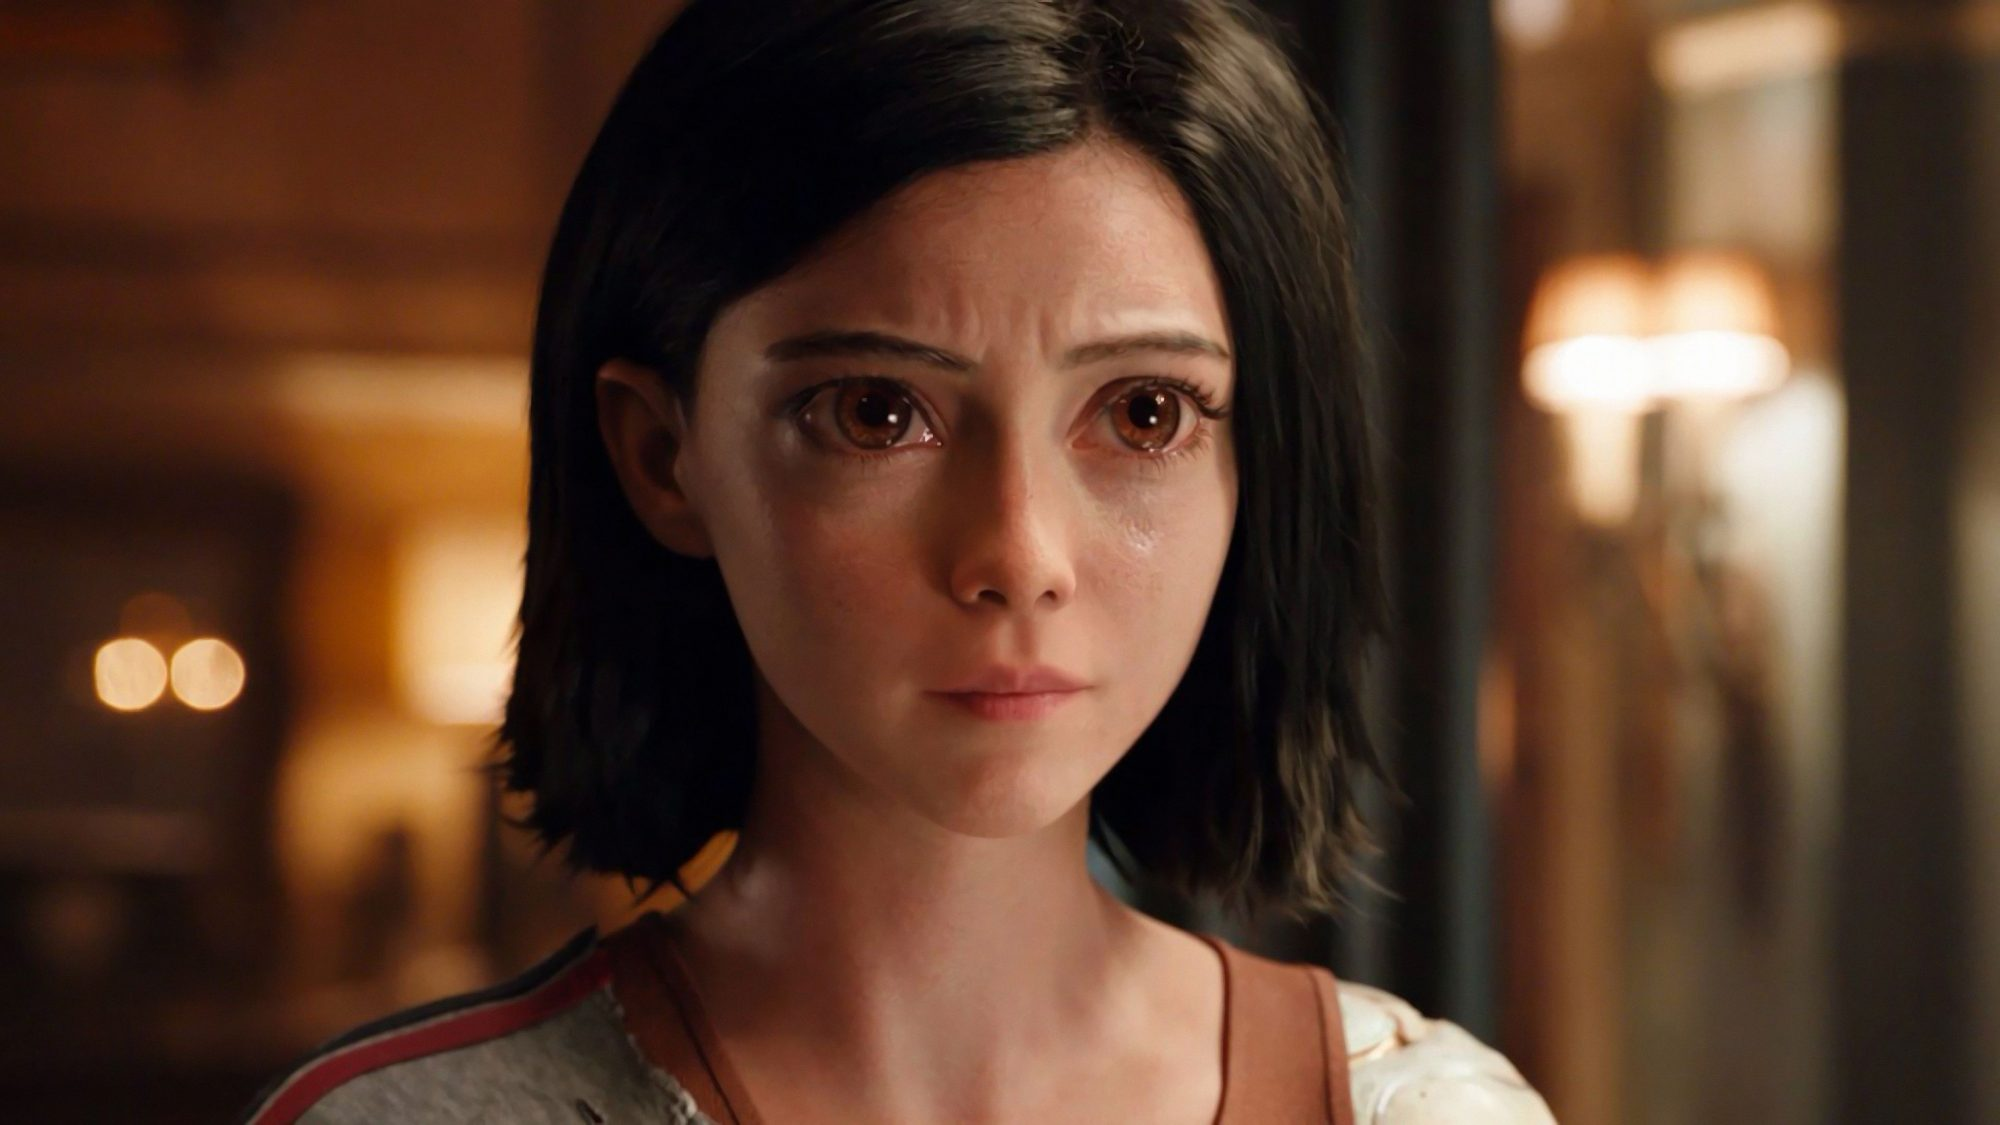 Rosa Salazar plays cyborg Alita in Alita Battle Angel